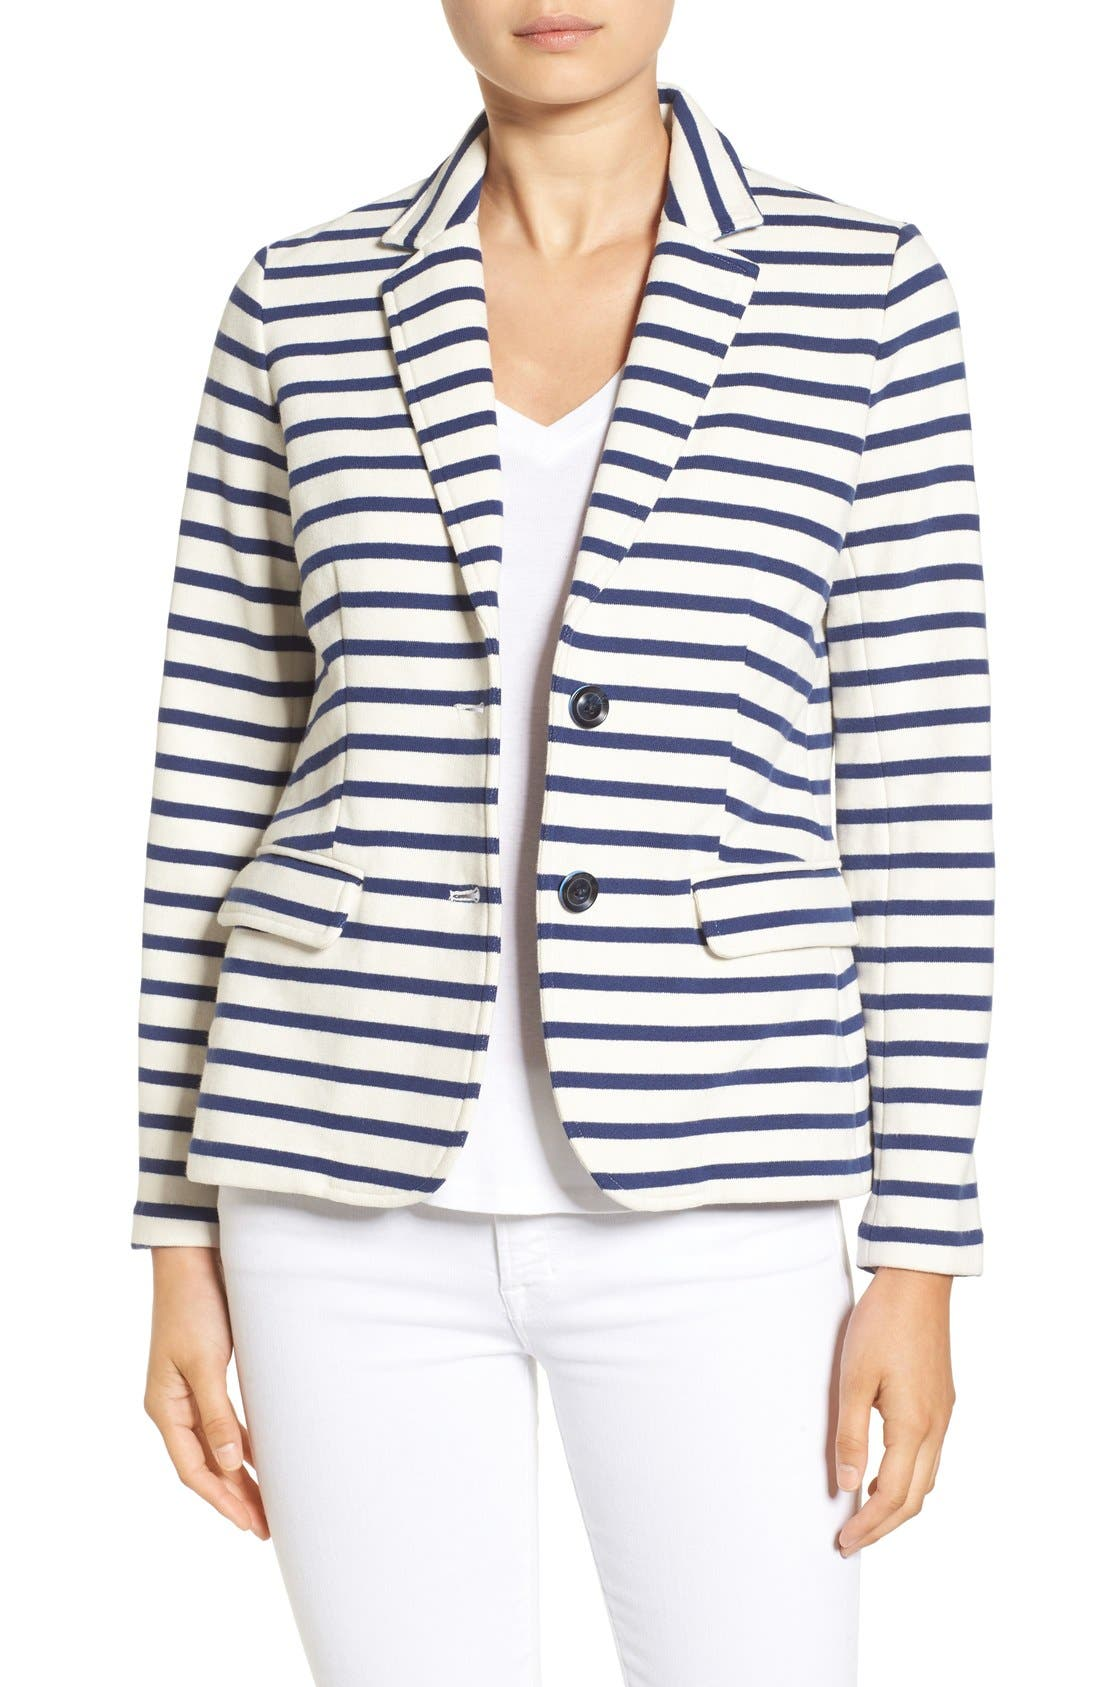 Alternate Image 1 Selected - Vineyard Vines Stripe Knit Blazer